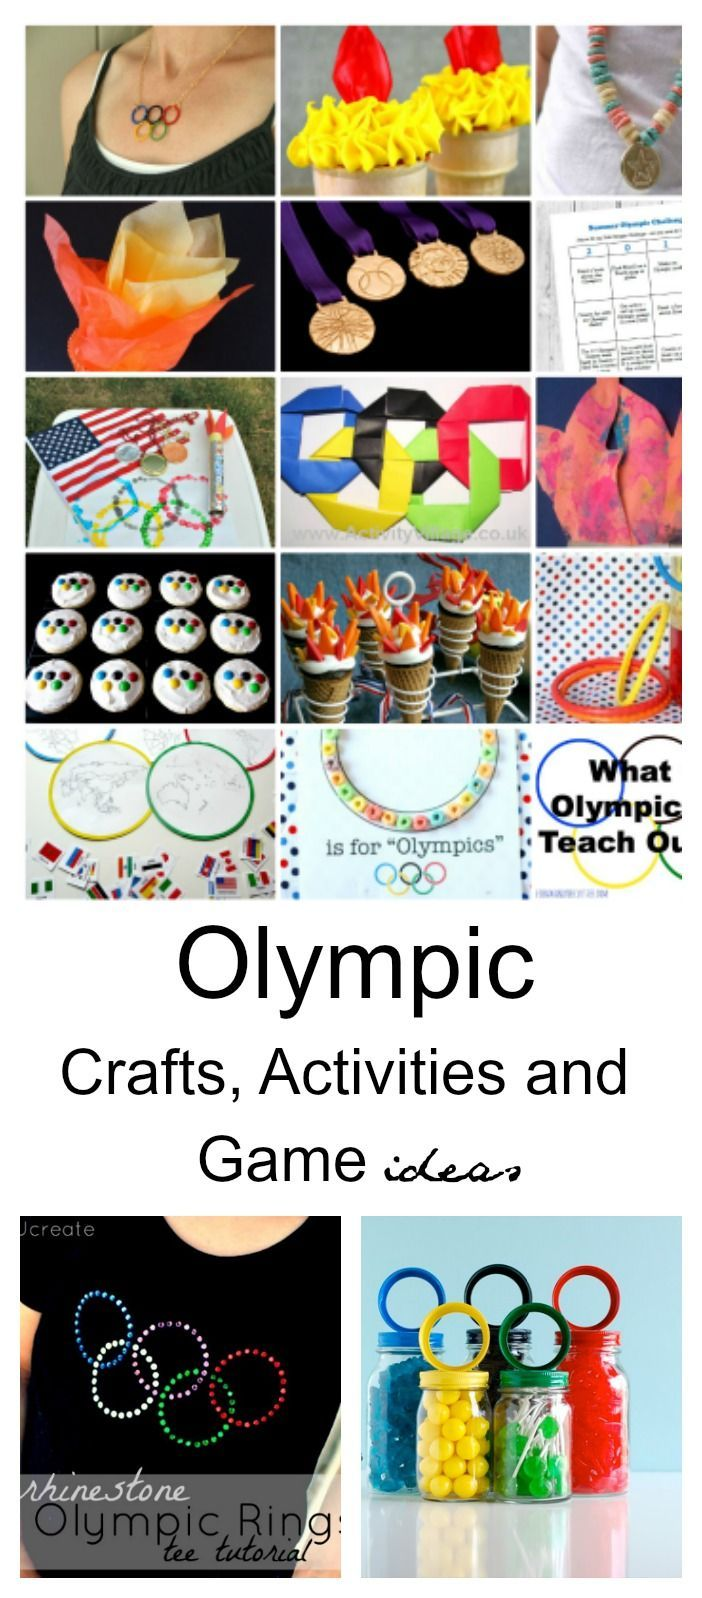 Summer Fun Ideas| Do you love to watch the Olympics? What is your favorite Olympic Event? Swimming is one of our family favorites. I thought it would be fun to have an Olympic themed party and so I collected some Olympic Crafts, Activities and Game Ideas from around the web. How will you celebrate the Olympic Games?